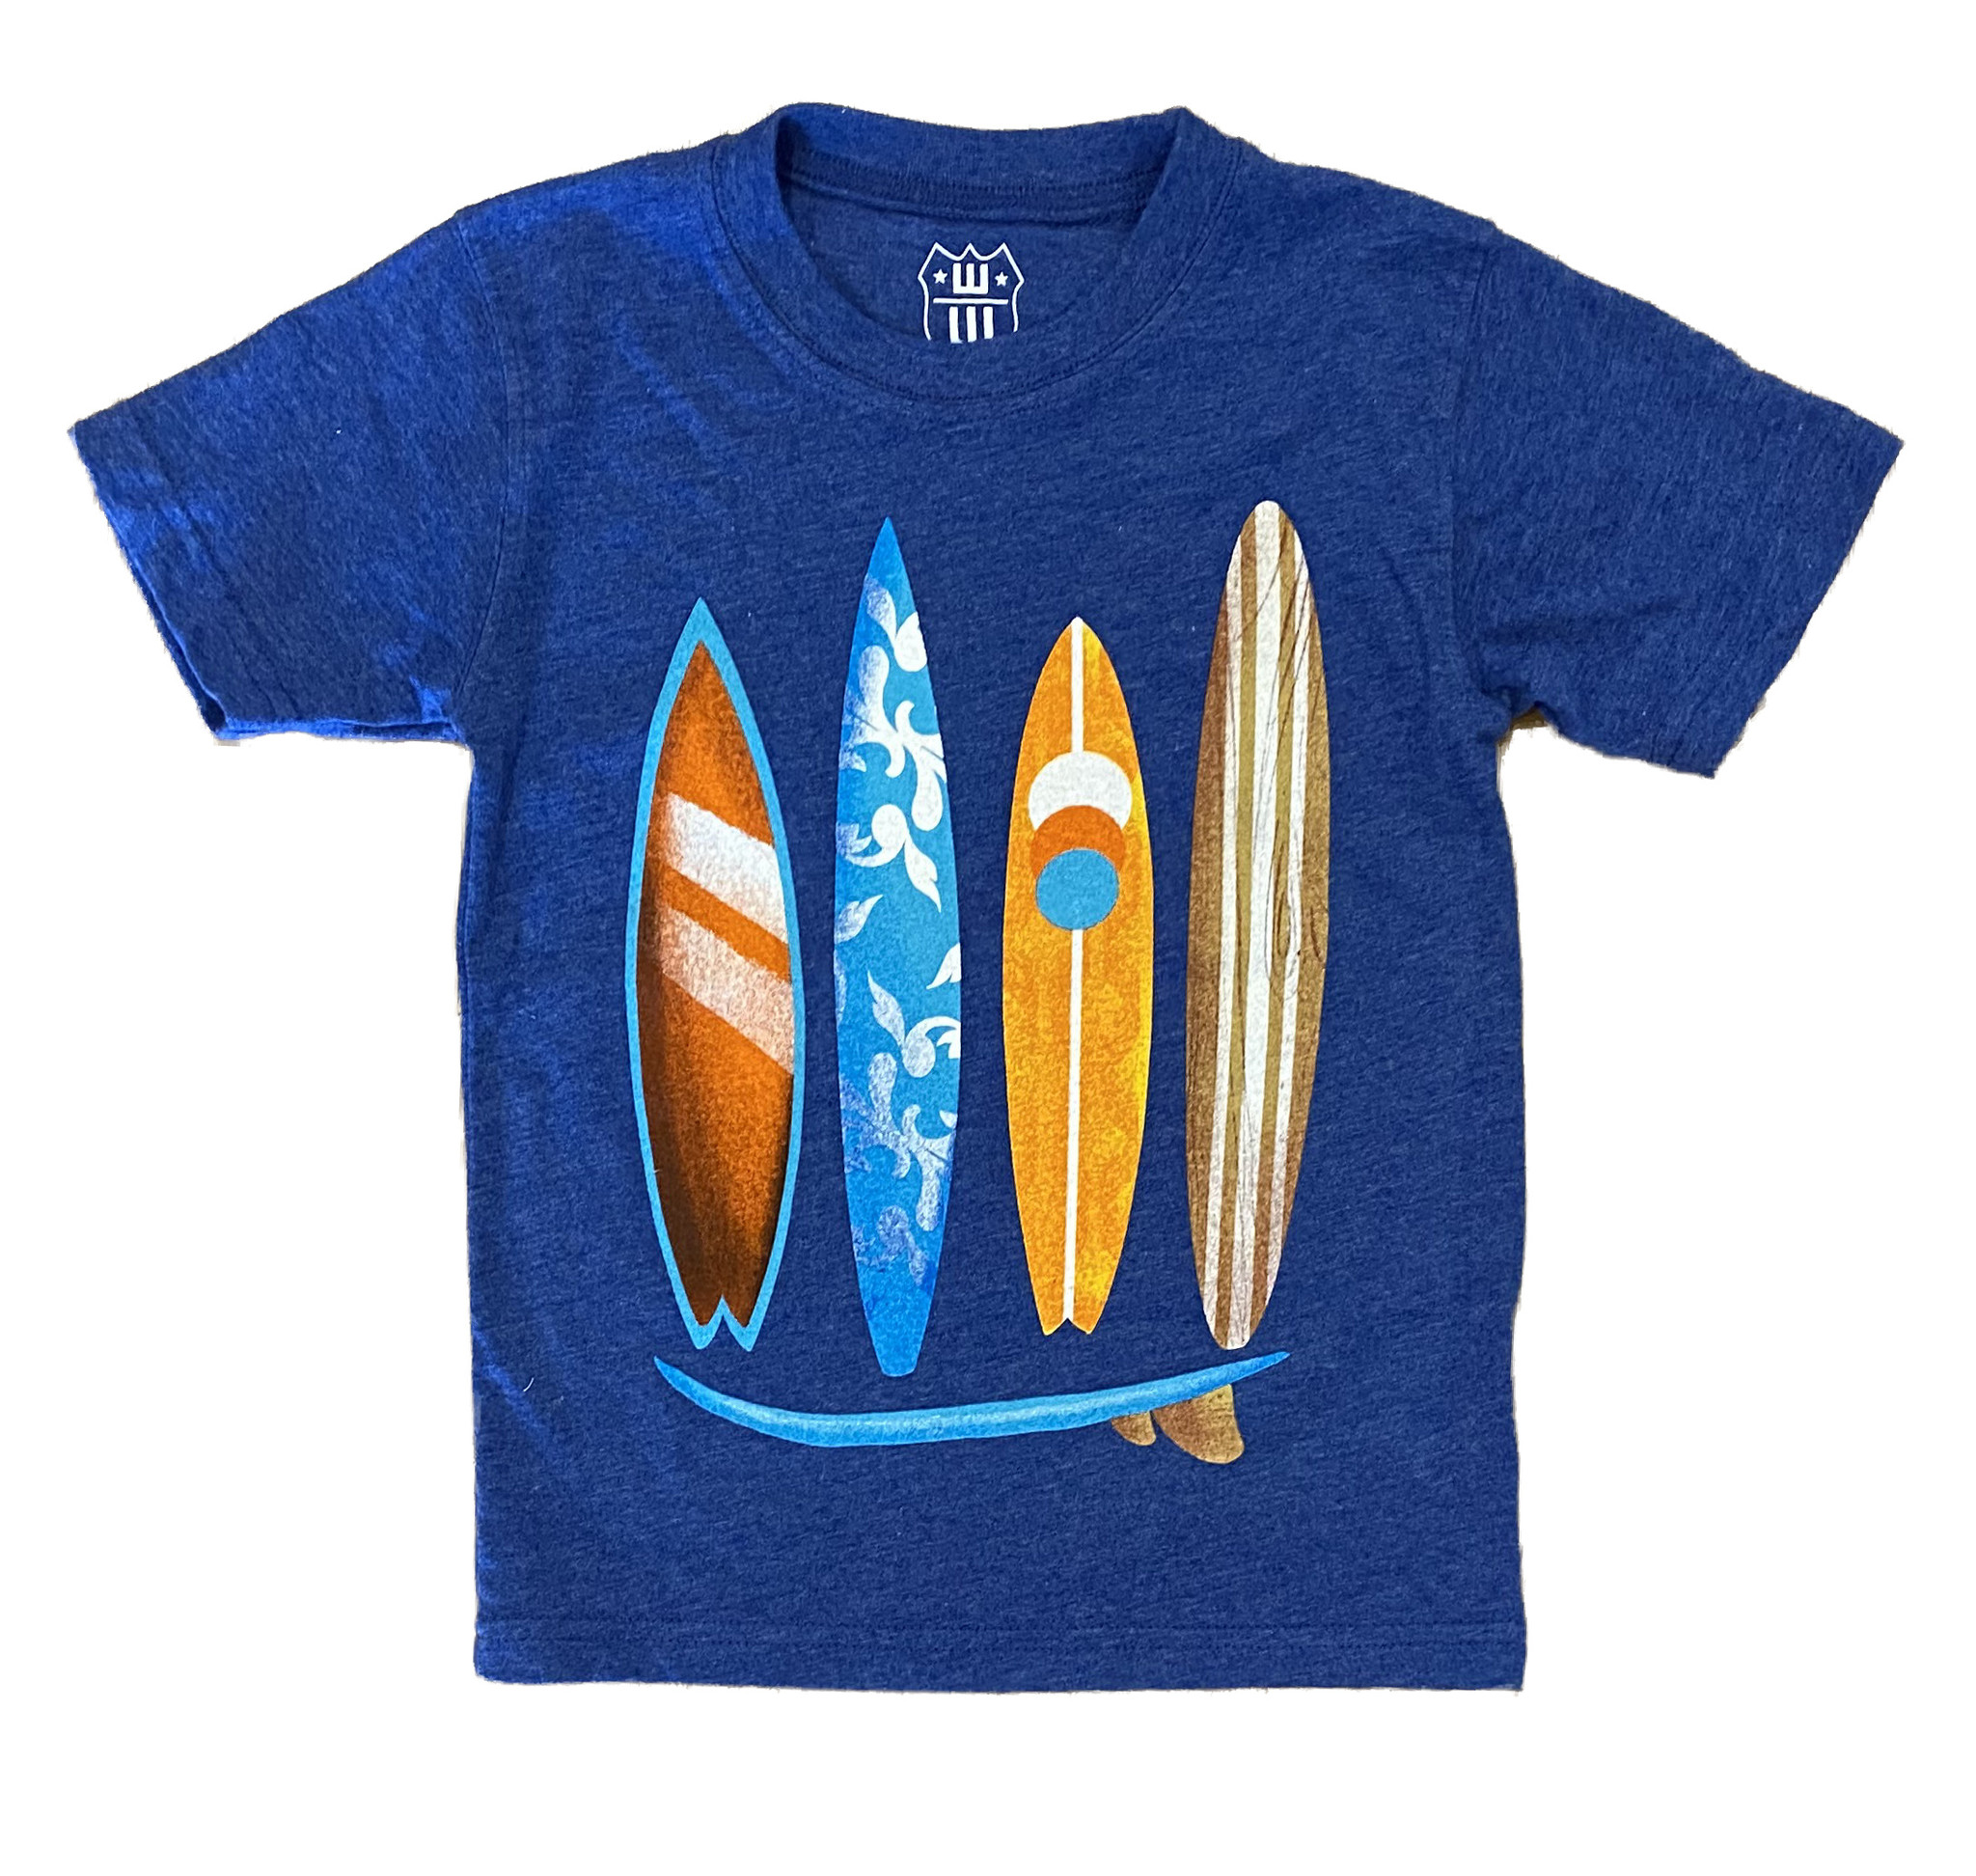 Wes & Willy Surf Boards Infant Tee